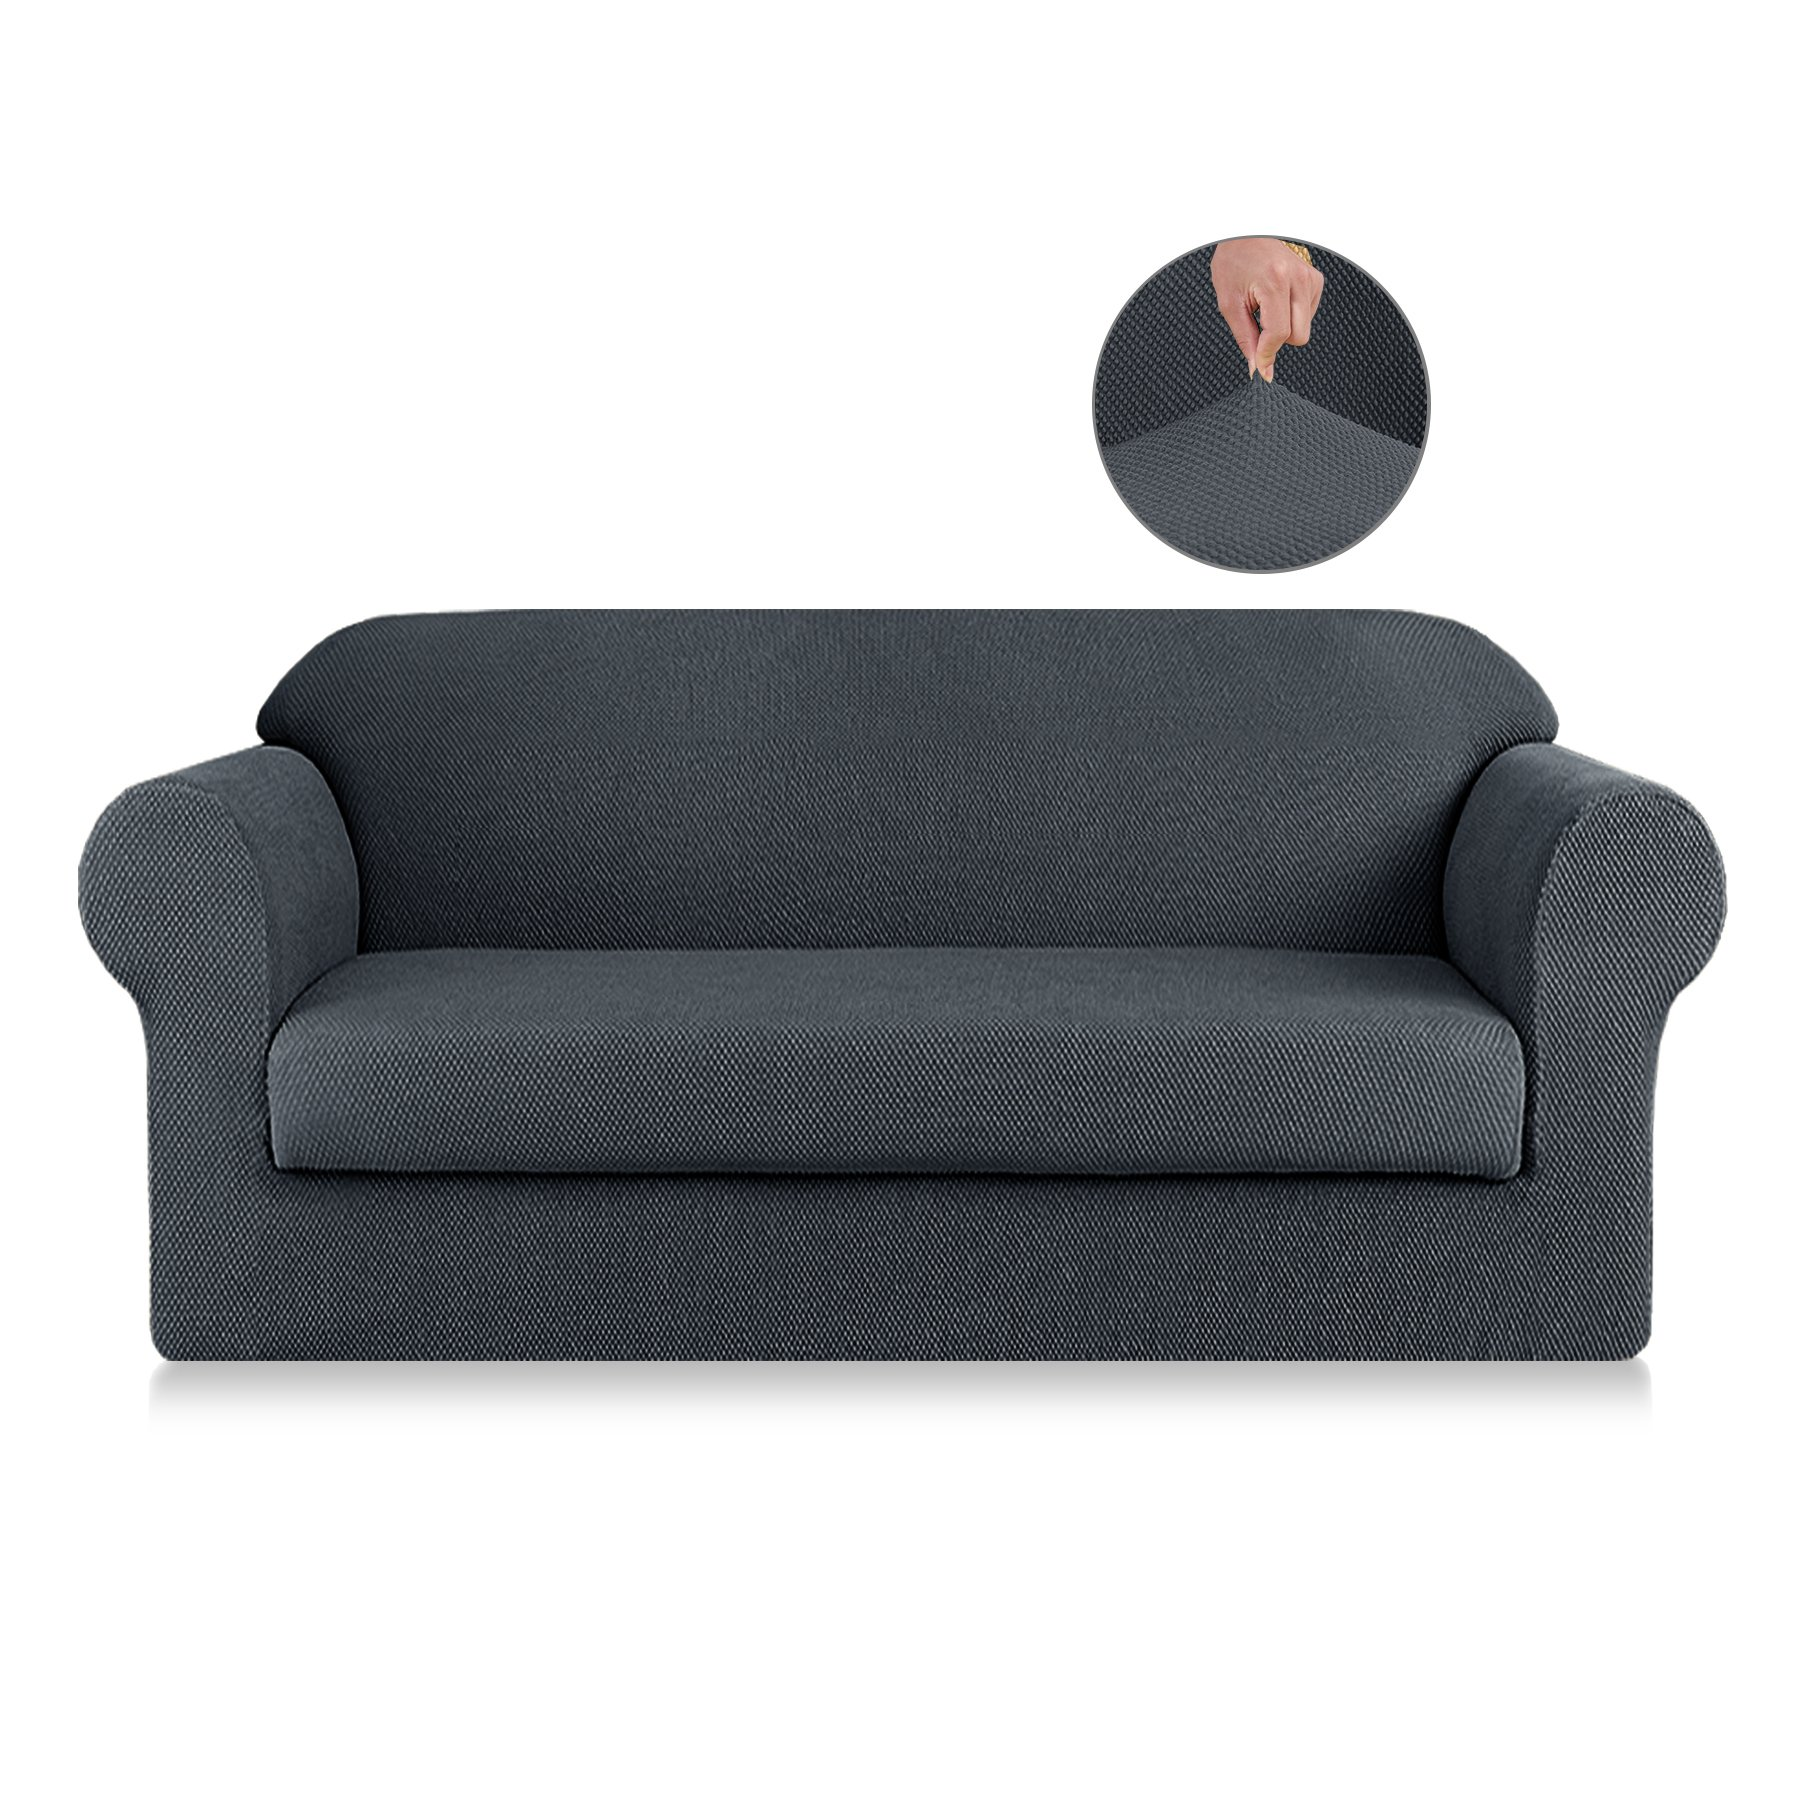 SyMax Jacquard Sofa Slipcovers 2-Piece Non Slip Sofa Seat Chair Covers Couch Furniture Protector for Children(Loveseat, Gray)